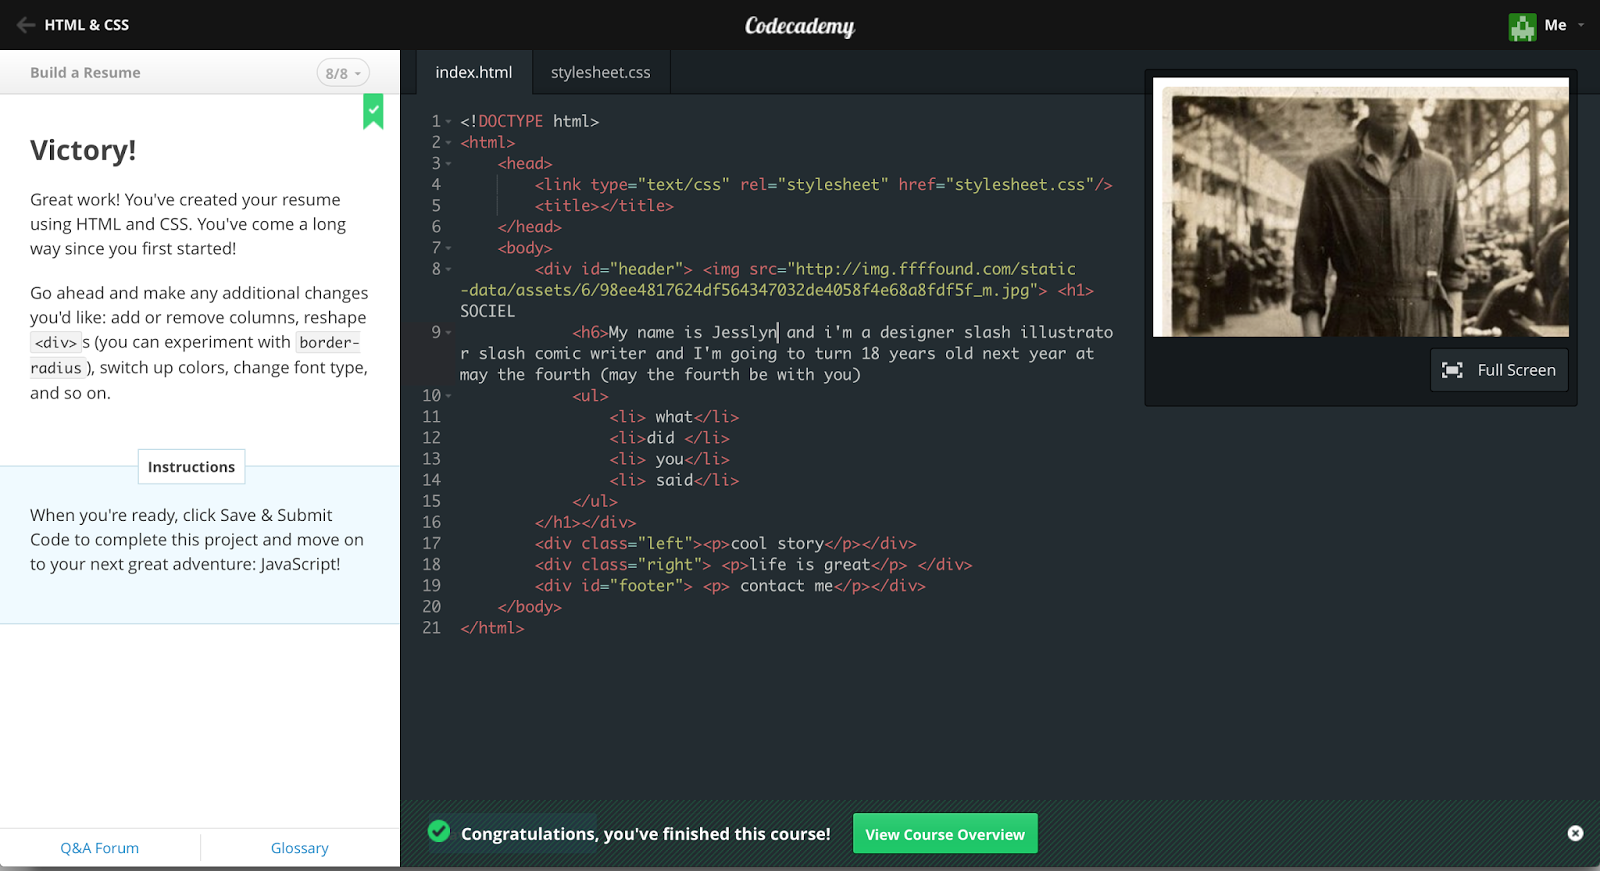 code academy html css build a resume - Resume Using Html And Css